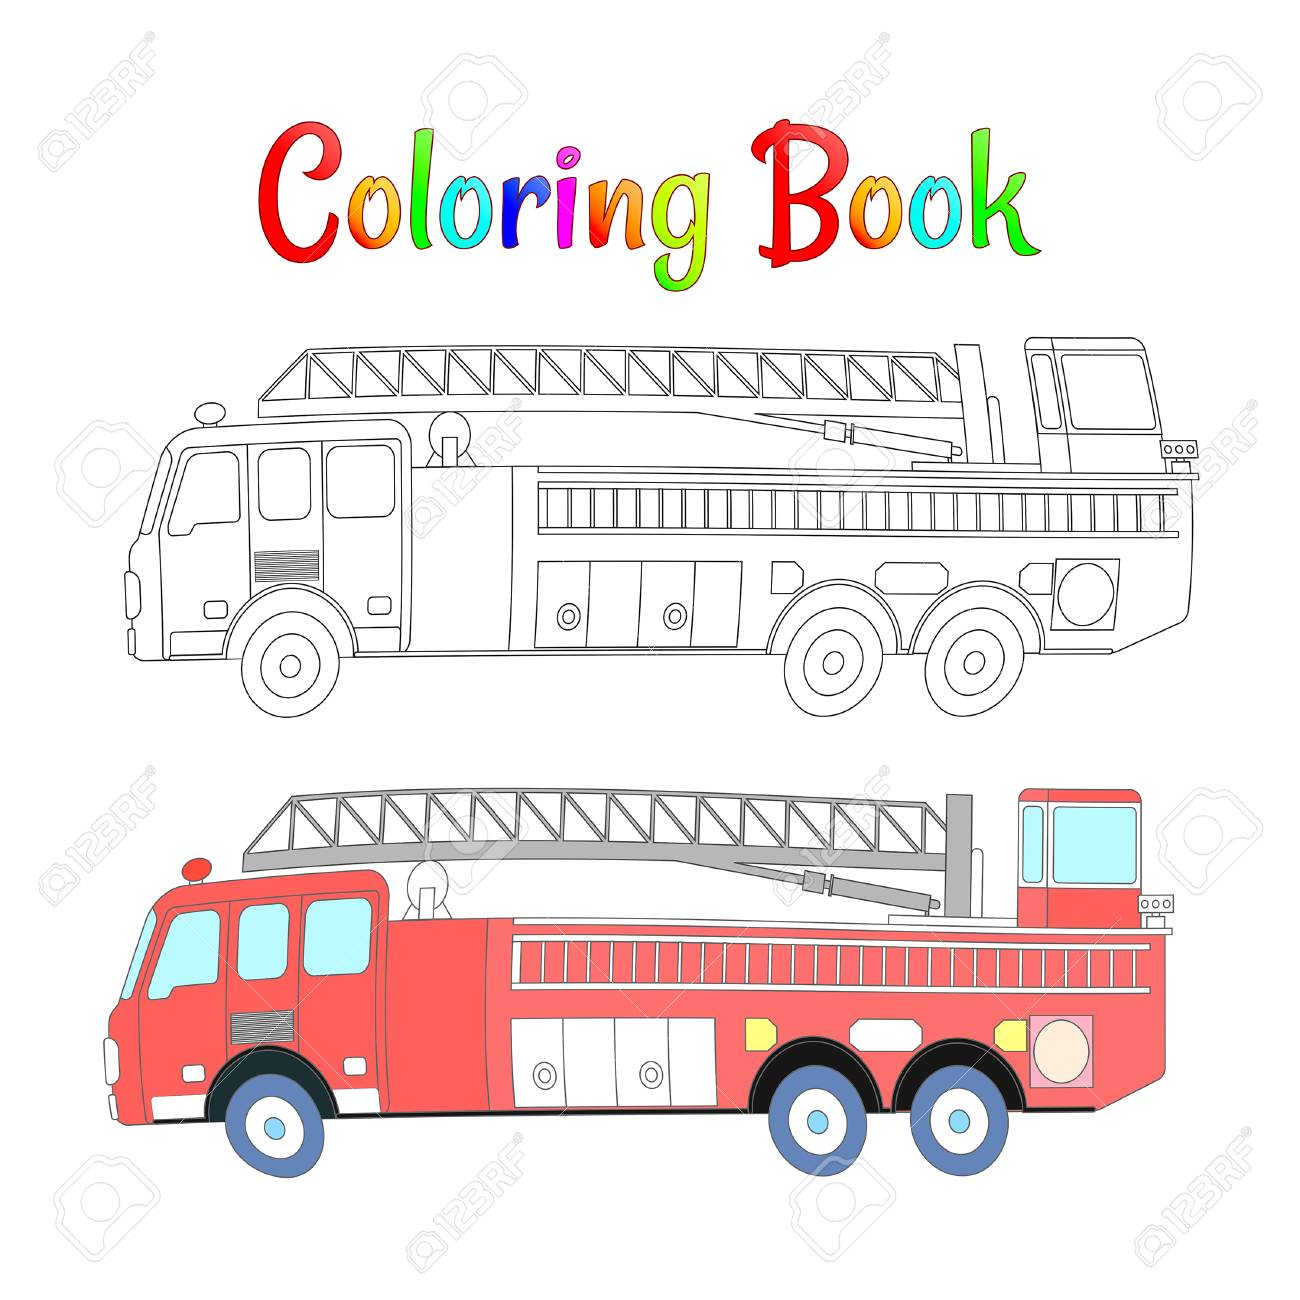 Coloring Pages For Kids With Toy Cars Royalty Free Cliparts ... | 1300x1300